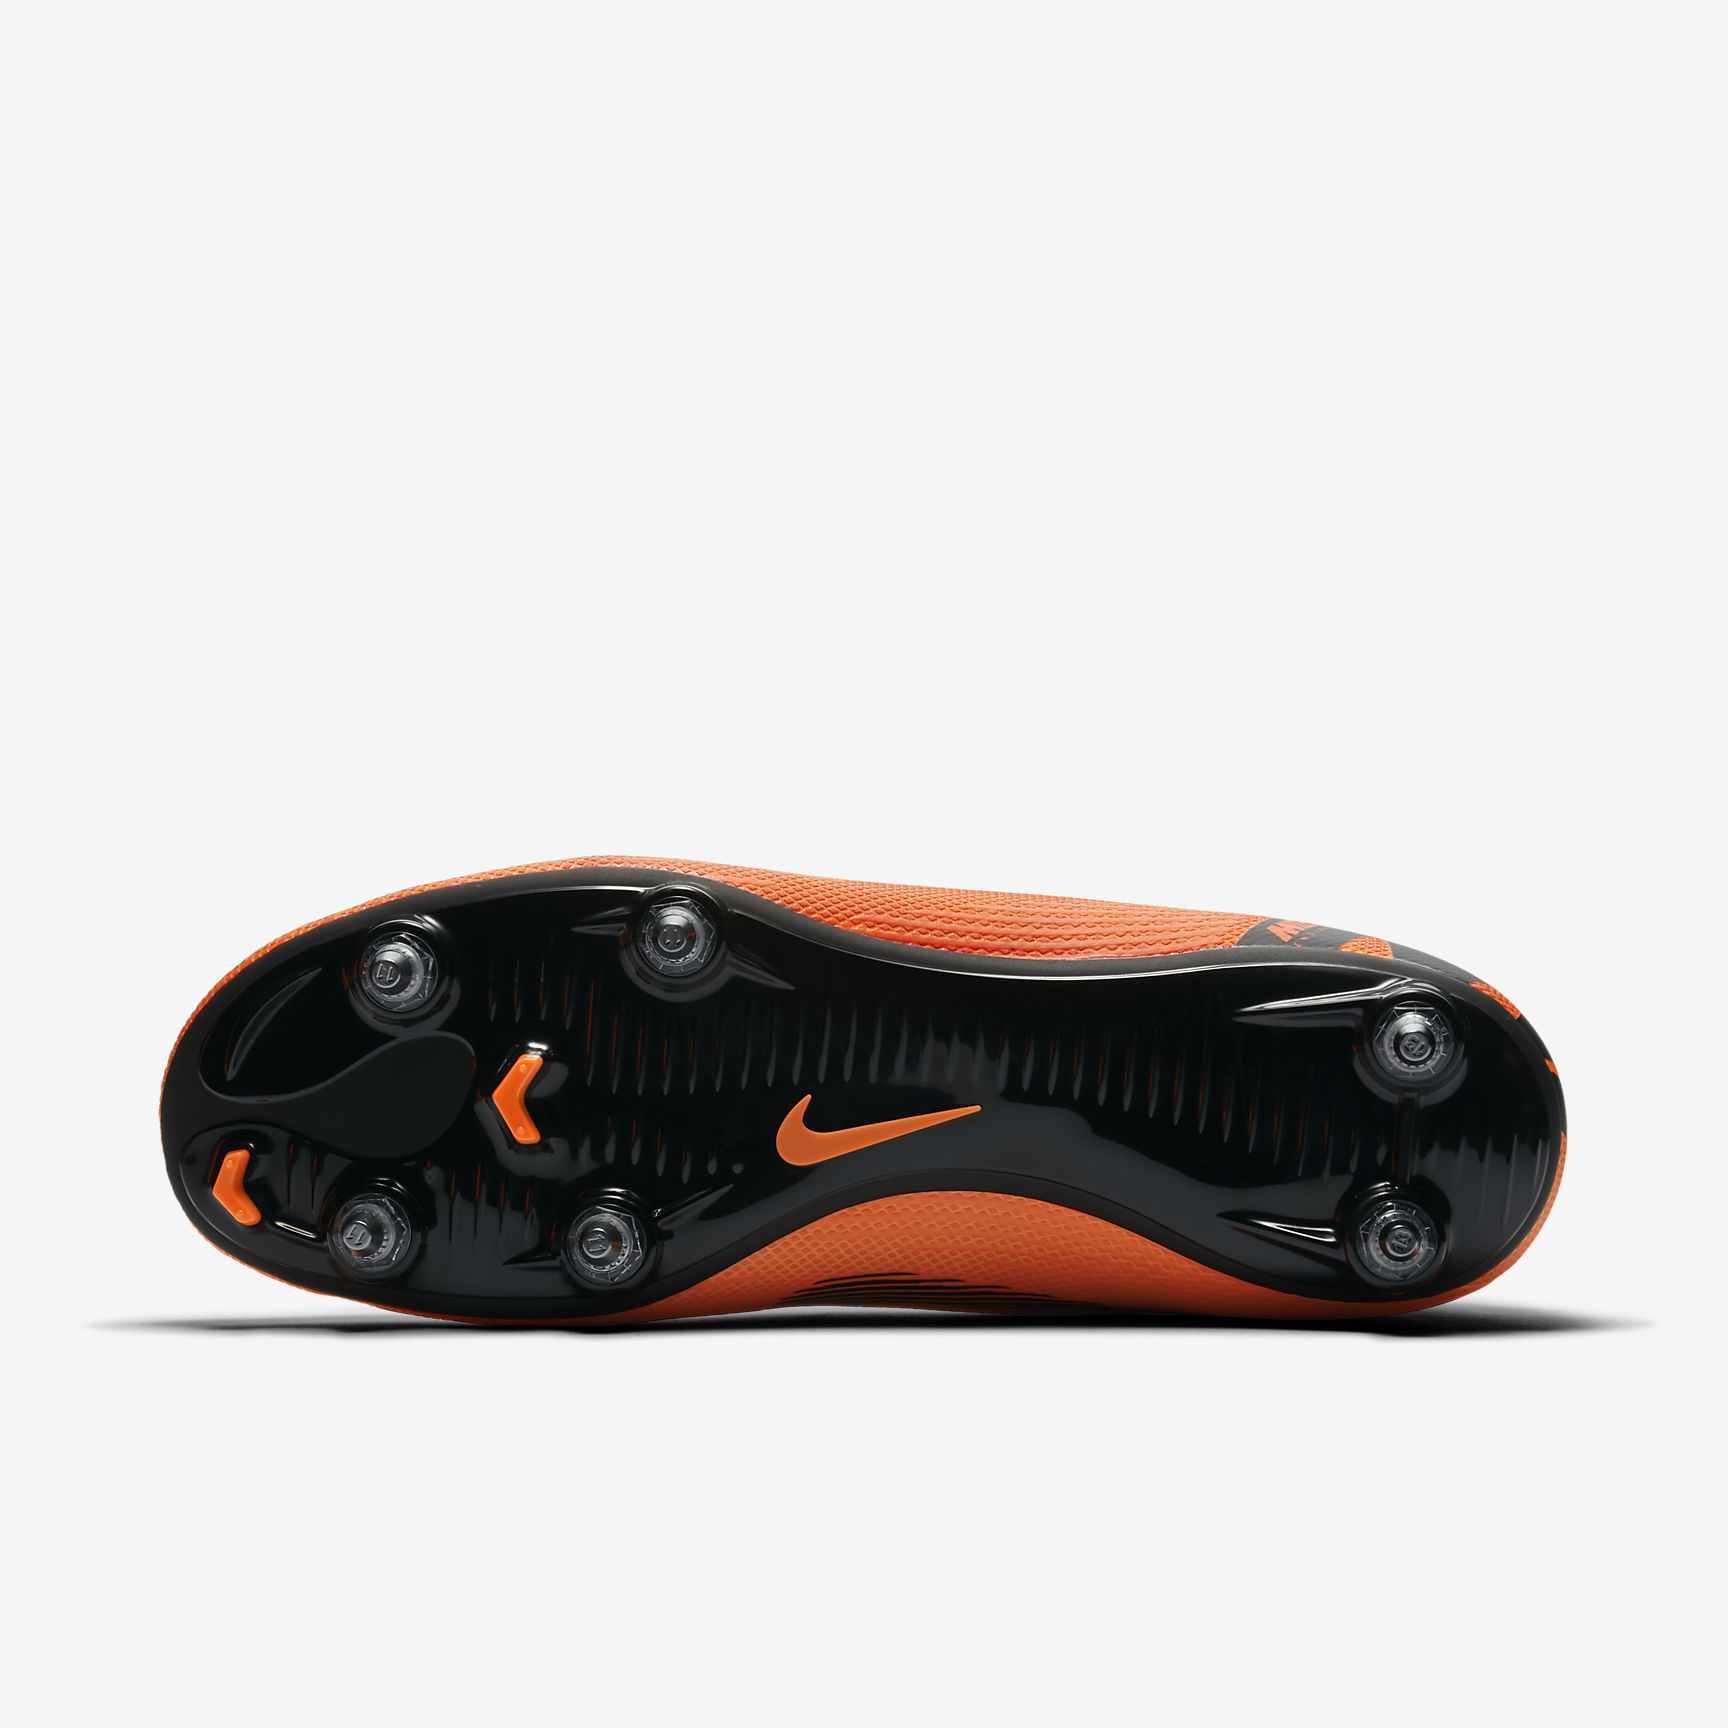 chaussures-football-Nike-Mercurial-Superfly-VI-Academy-img2